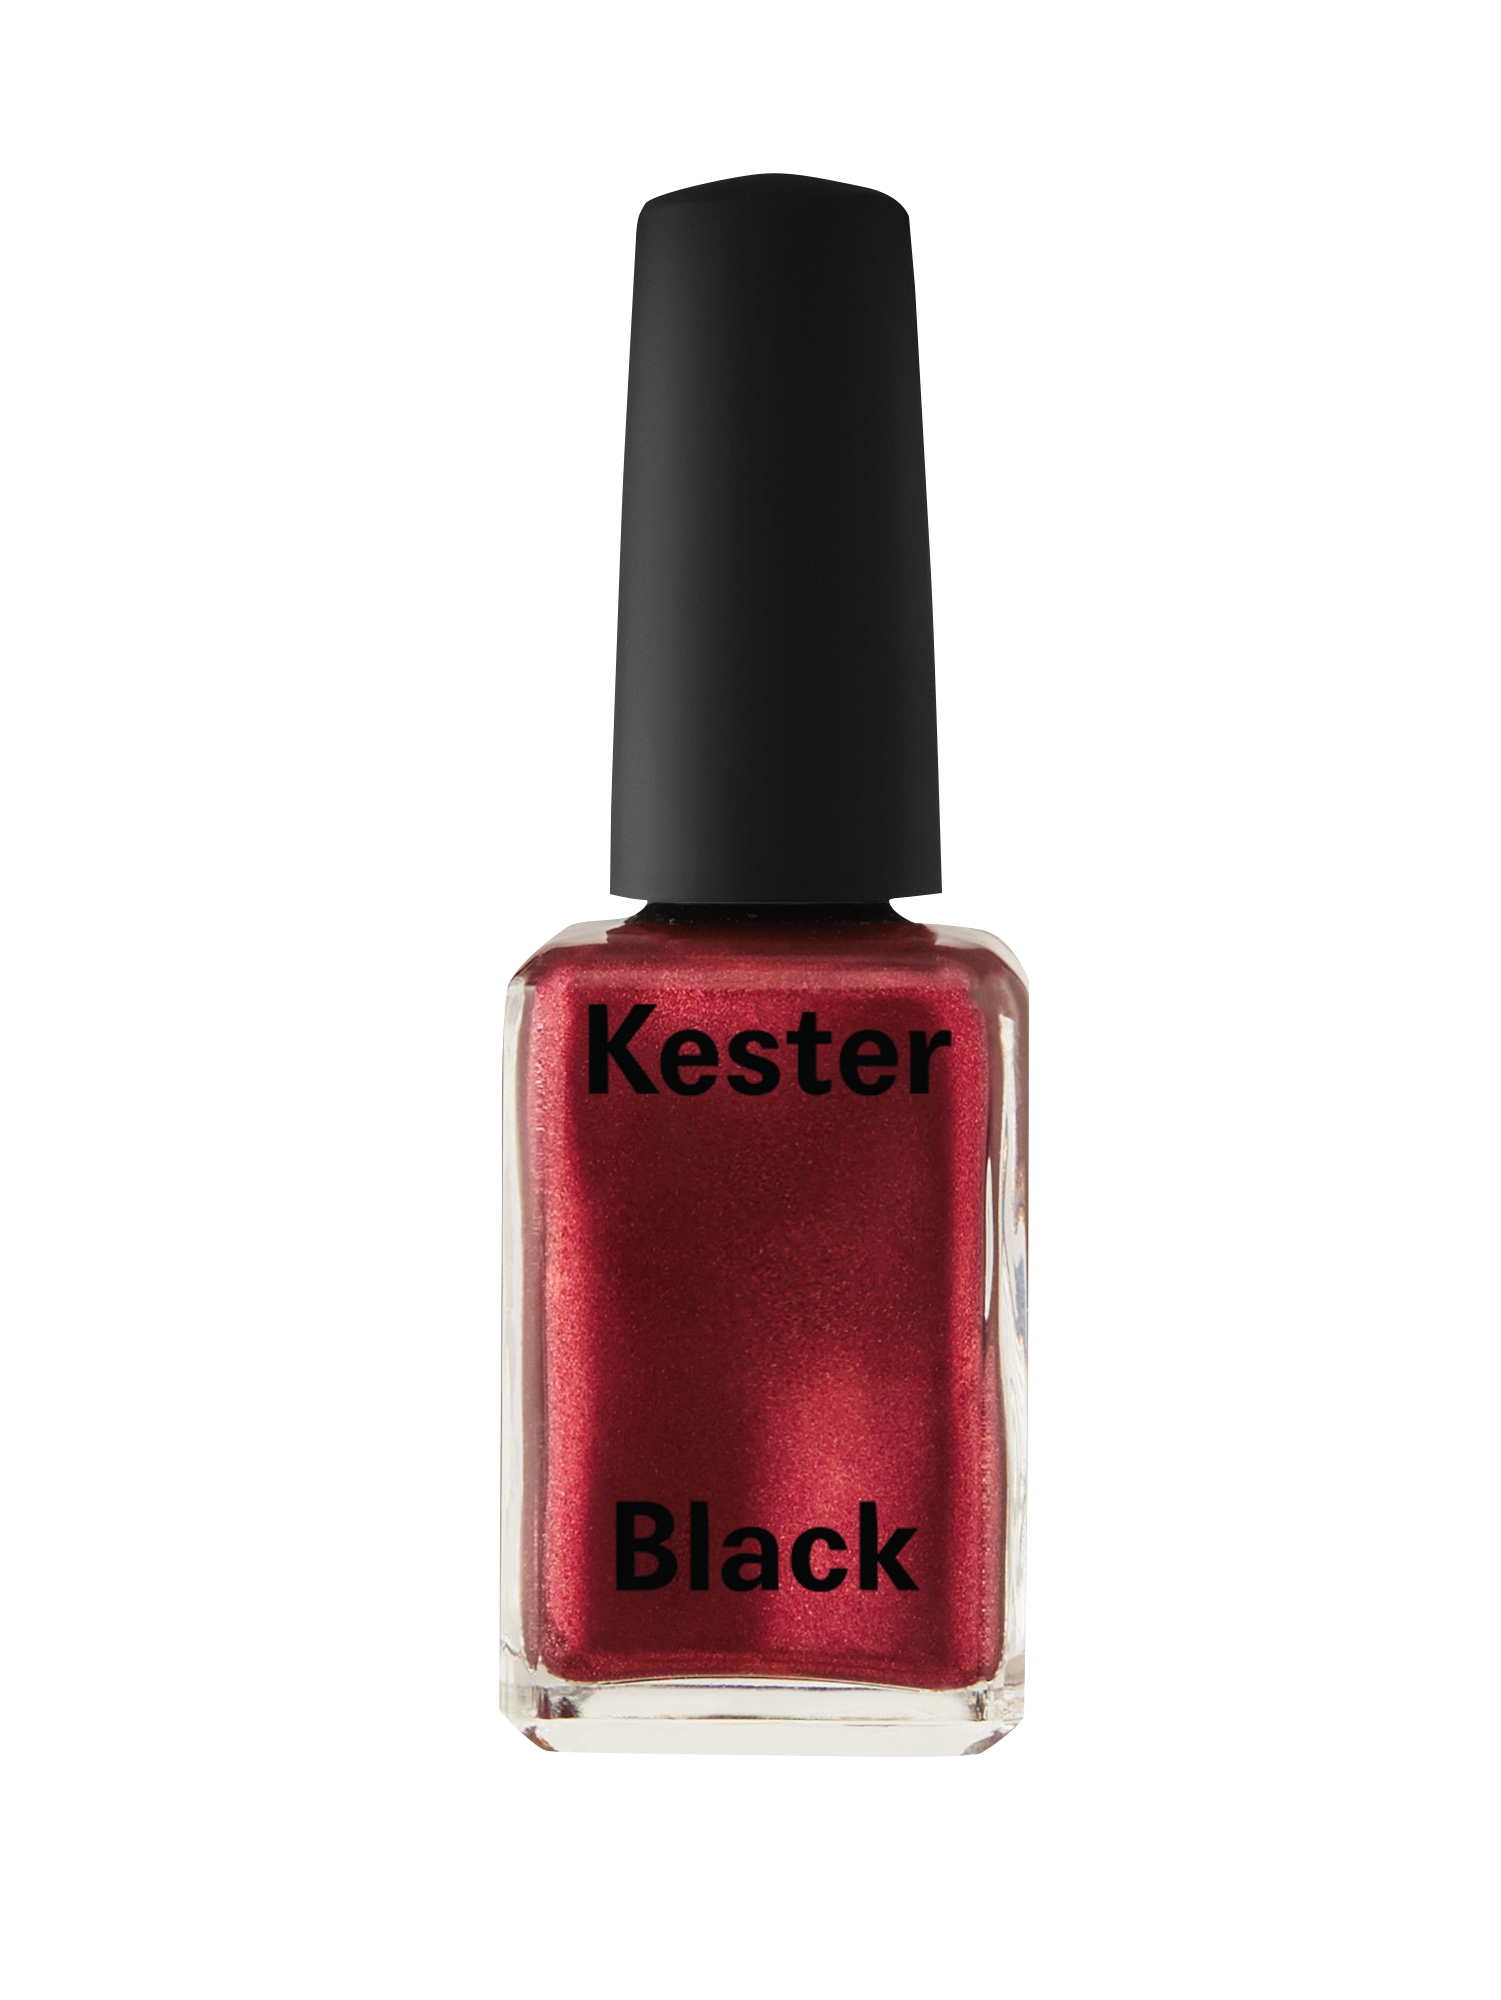 Kester Black Lucky Nail Polish